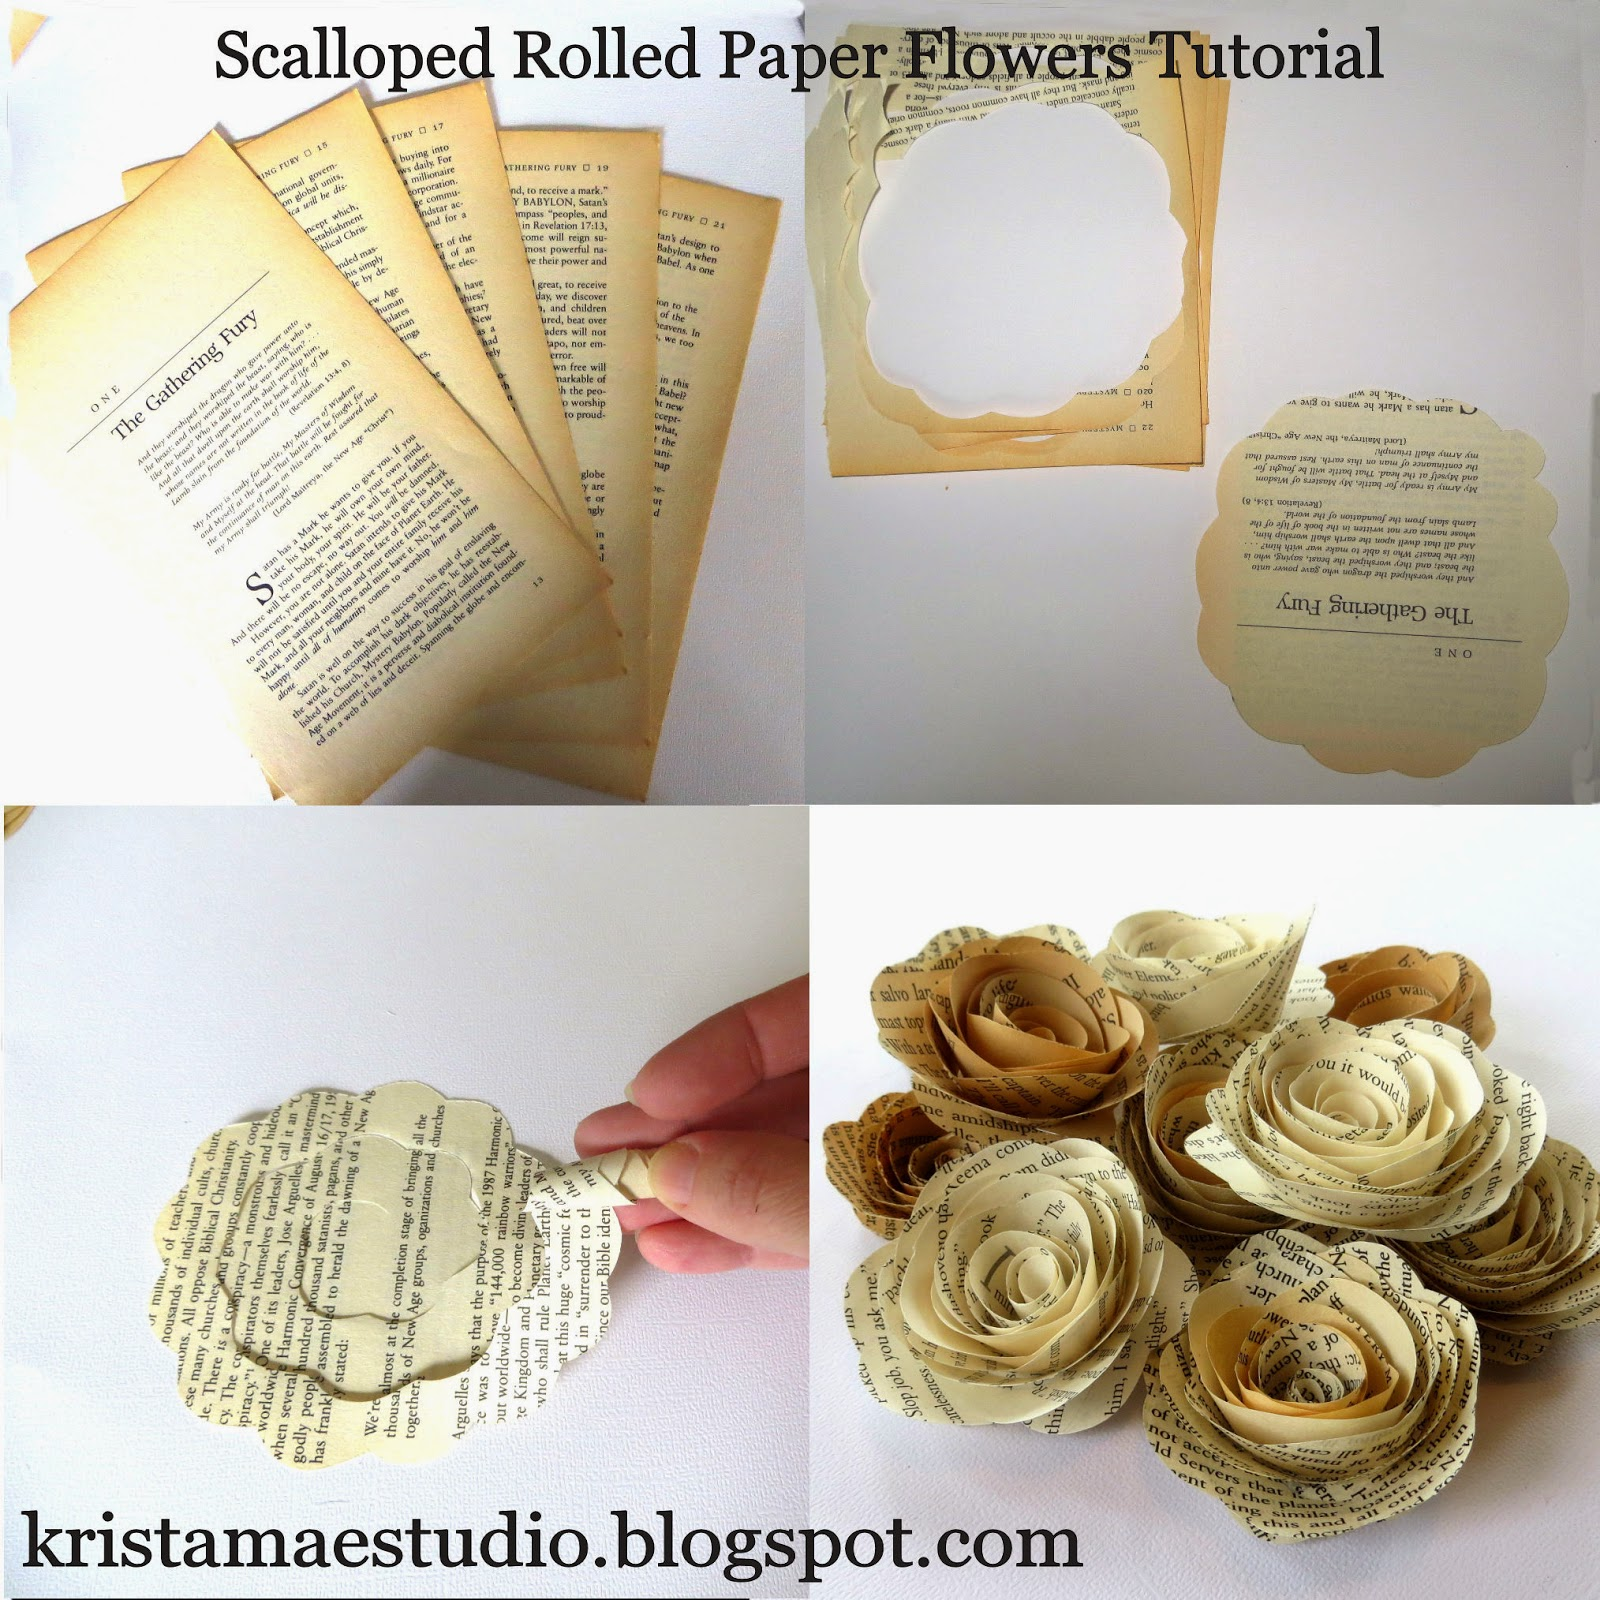 Krista Mae Studio Scalloped Rolled Paper Flower Tutorial